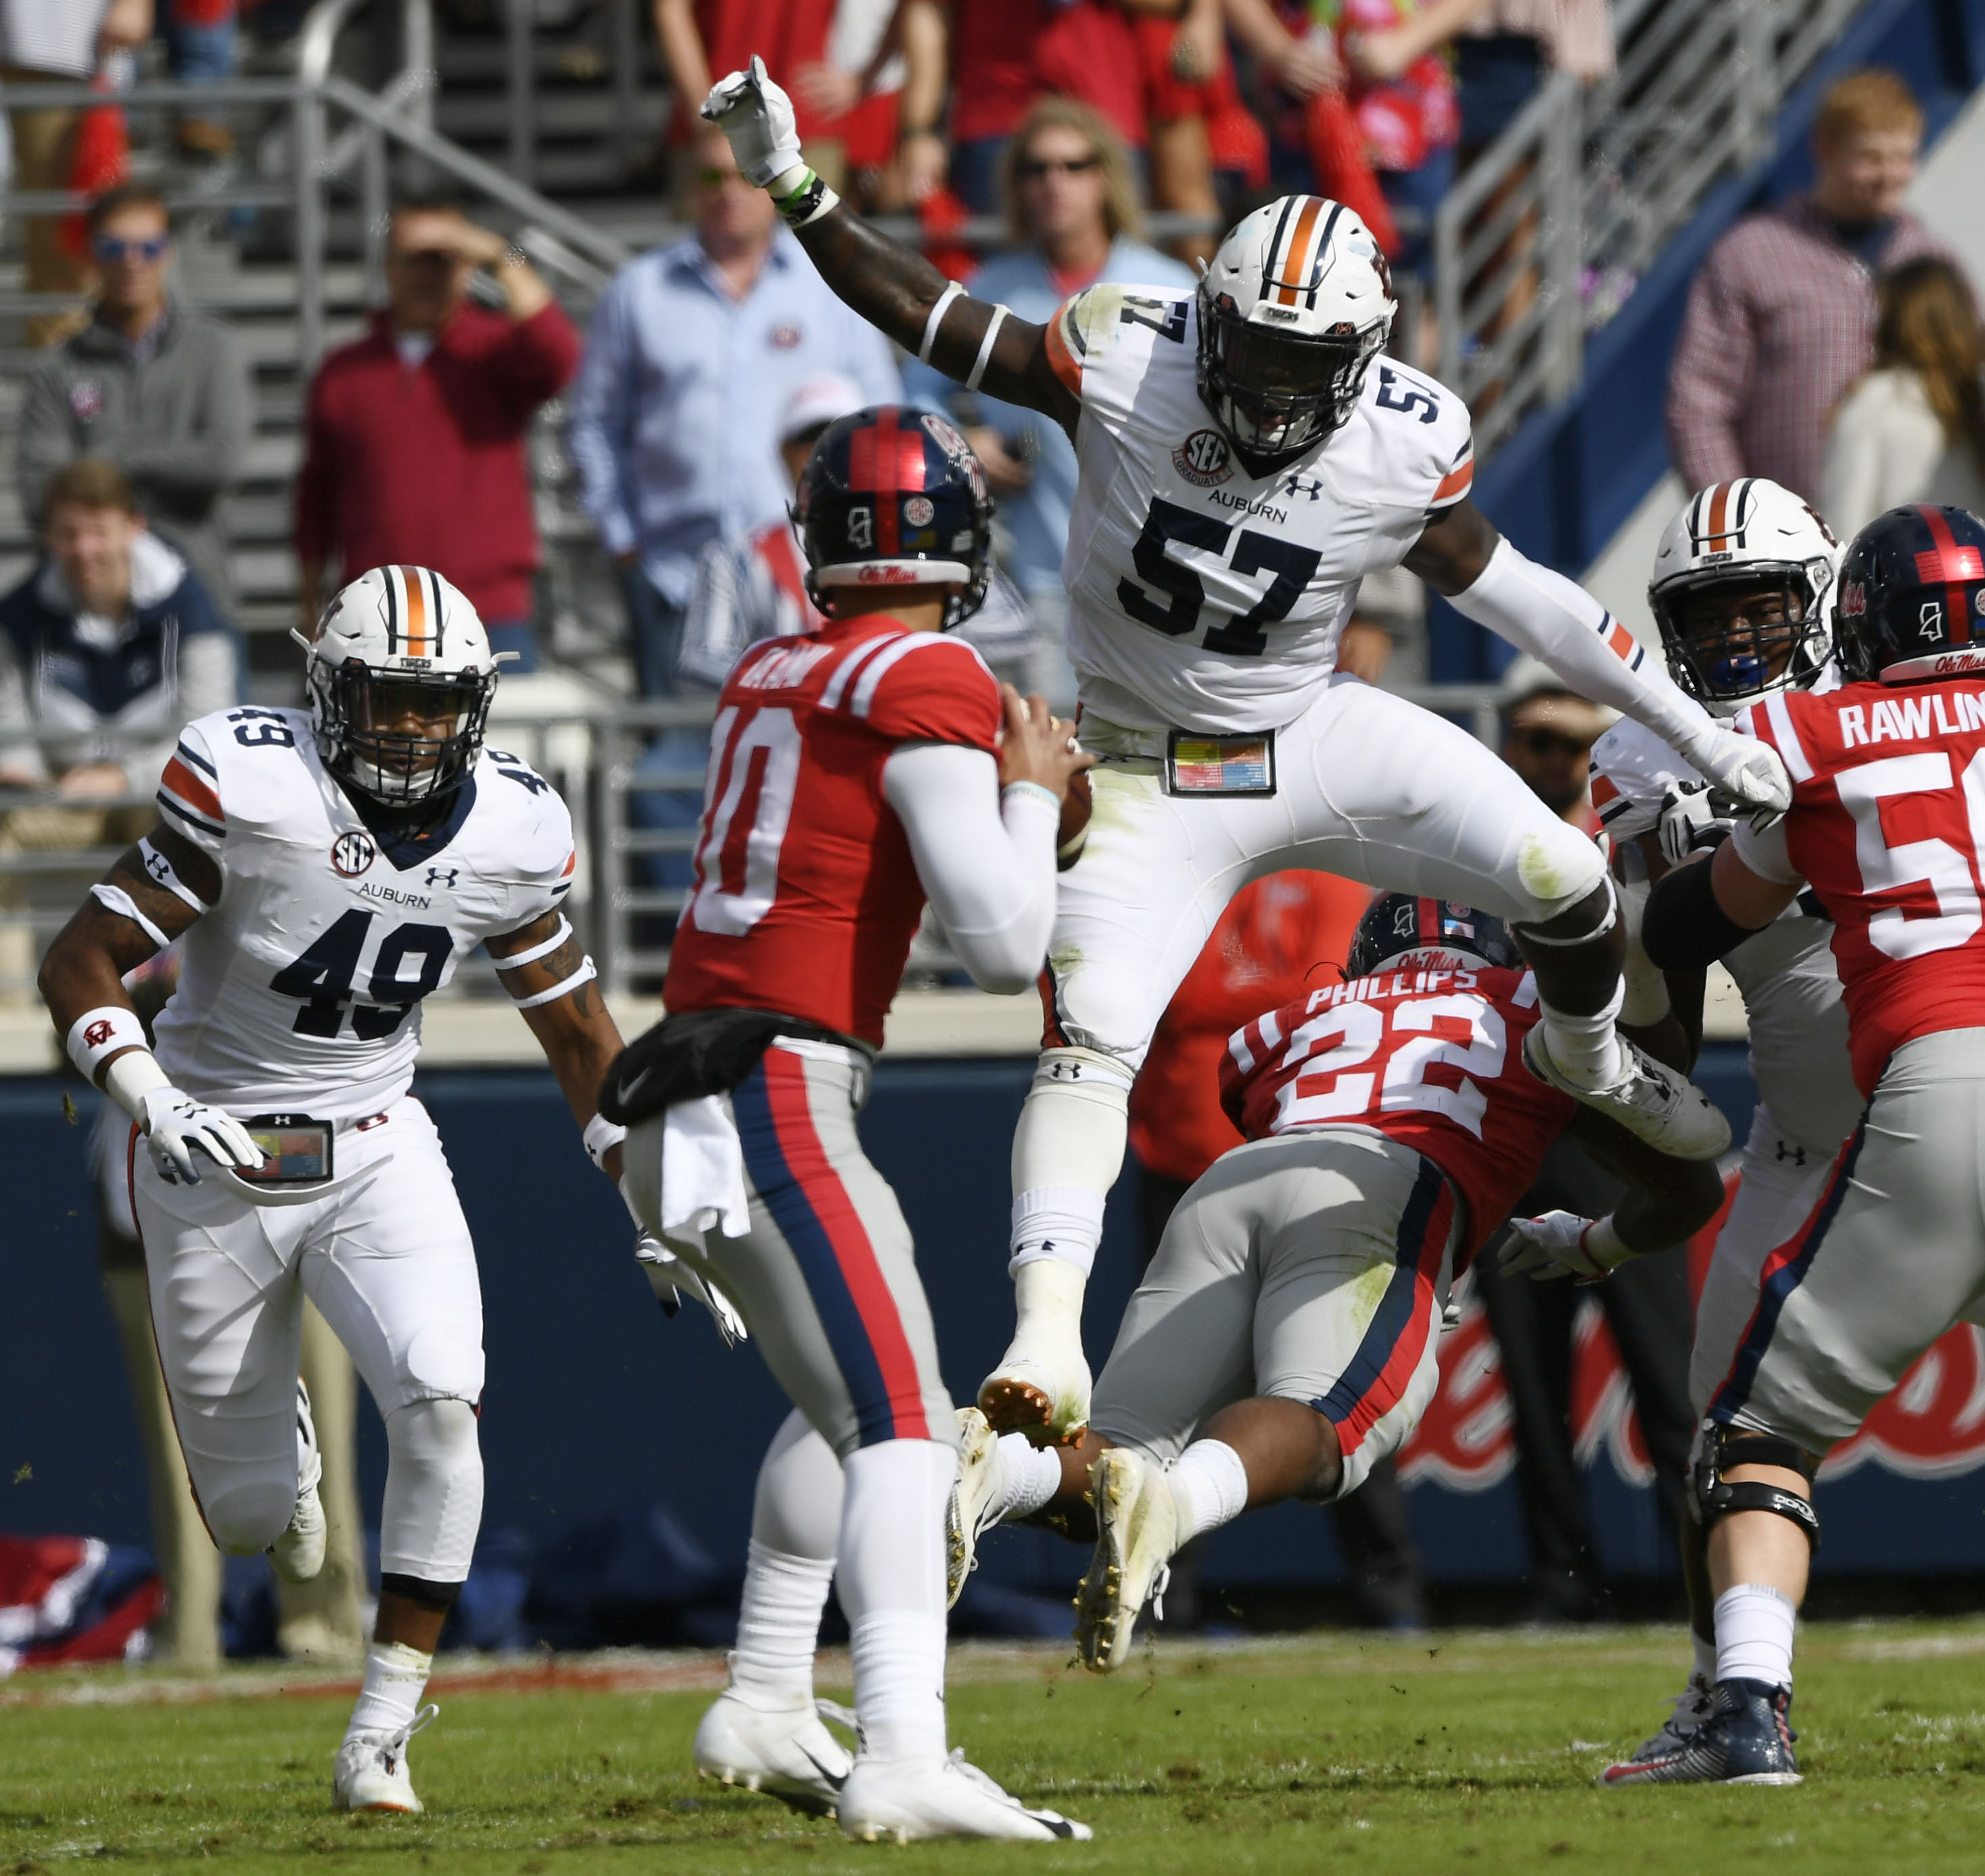 Auburn takes down Ole Miss, gets back on winning track